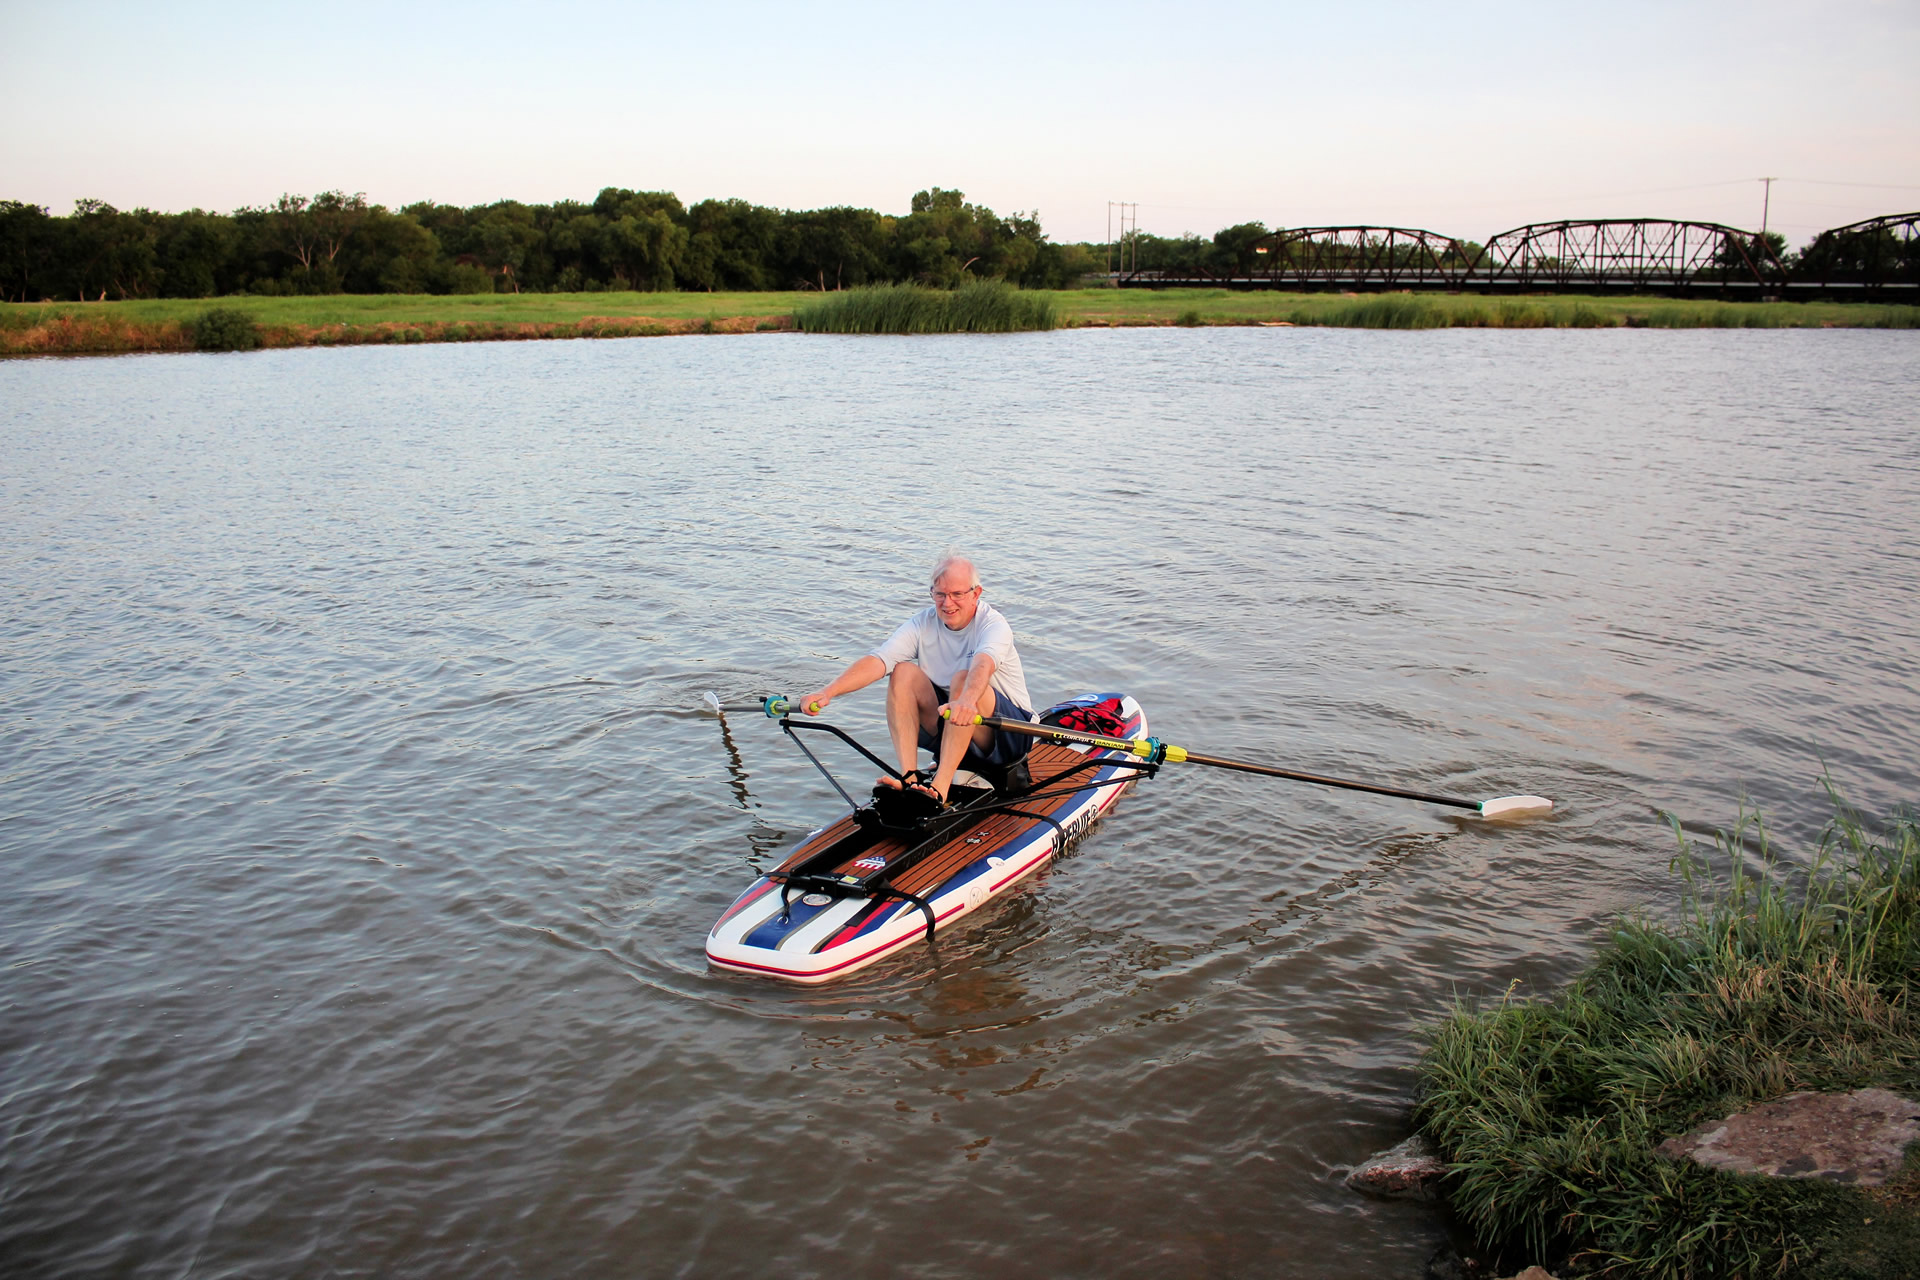 Leslie-Ray-Sears-Oar-Board-Paddle-Board-Rower-Ambassadors-Whitehall-Rowing-and-Sail